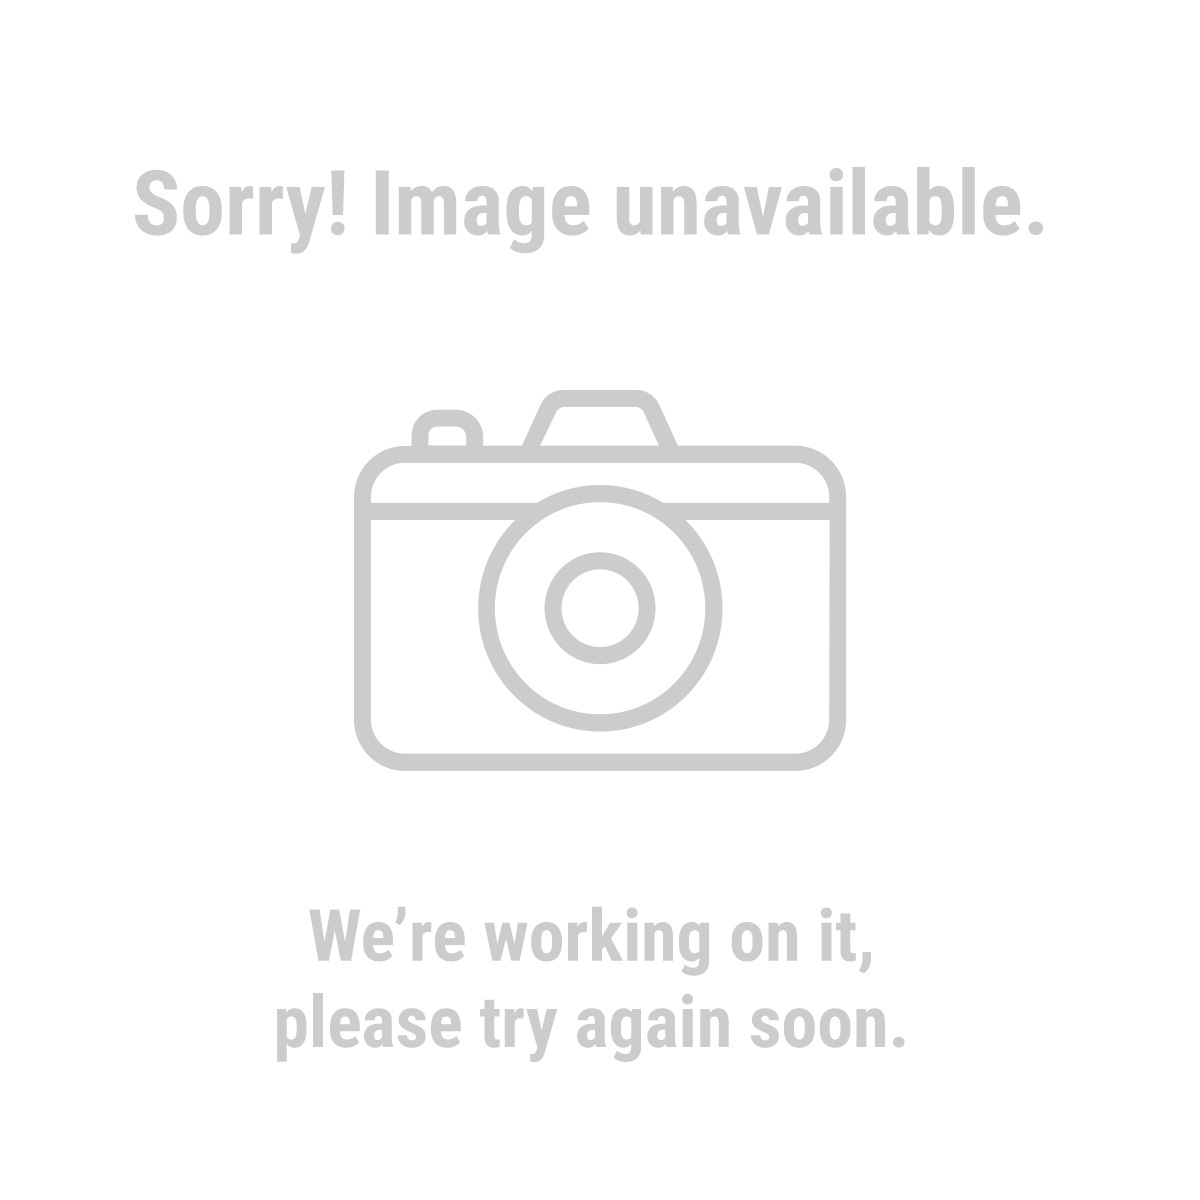 Western Safety 41054 1 Pair Fire Resistant Welding Gloves